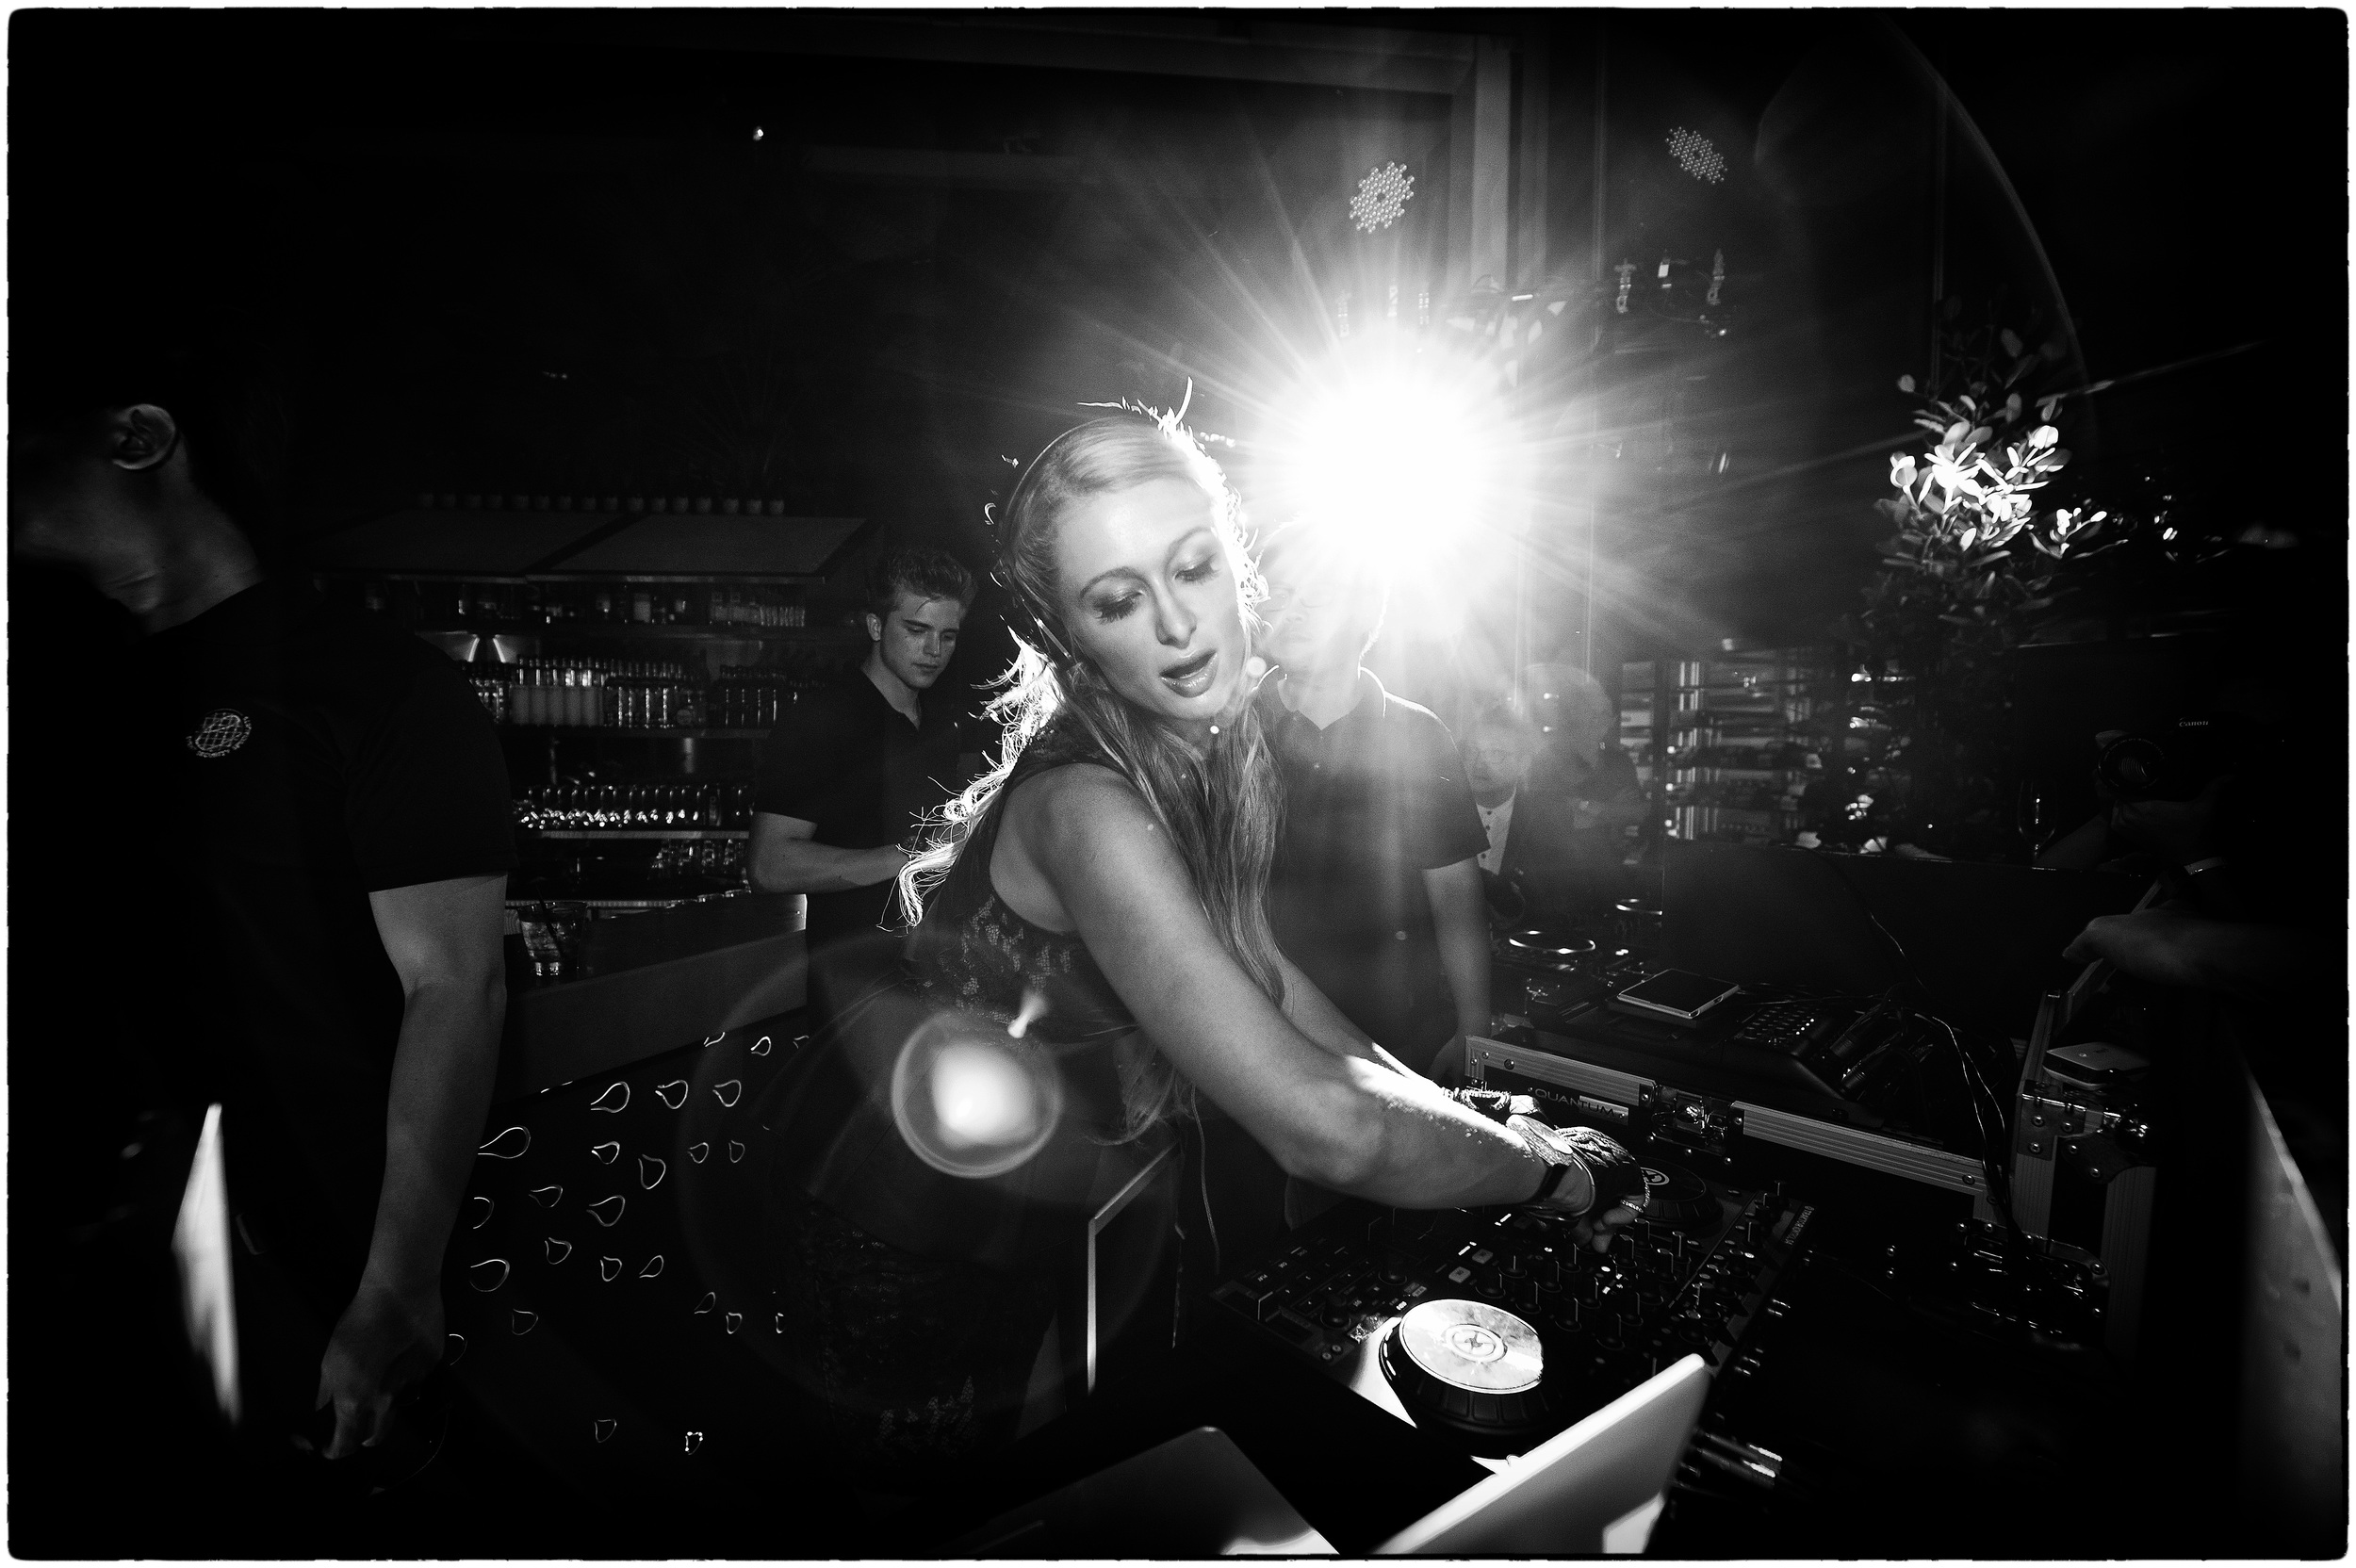 Paris Hilton spinning at ME@OUE af a Singapore GP after-party.